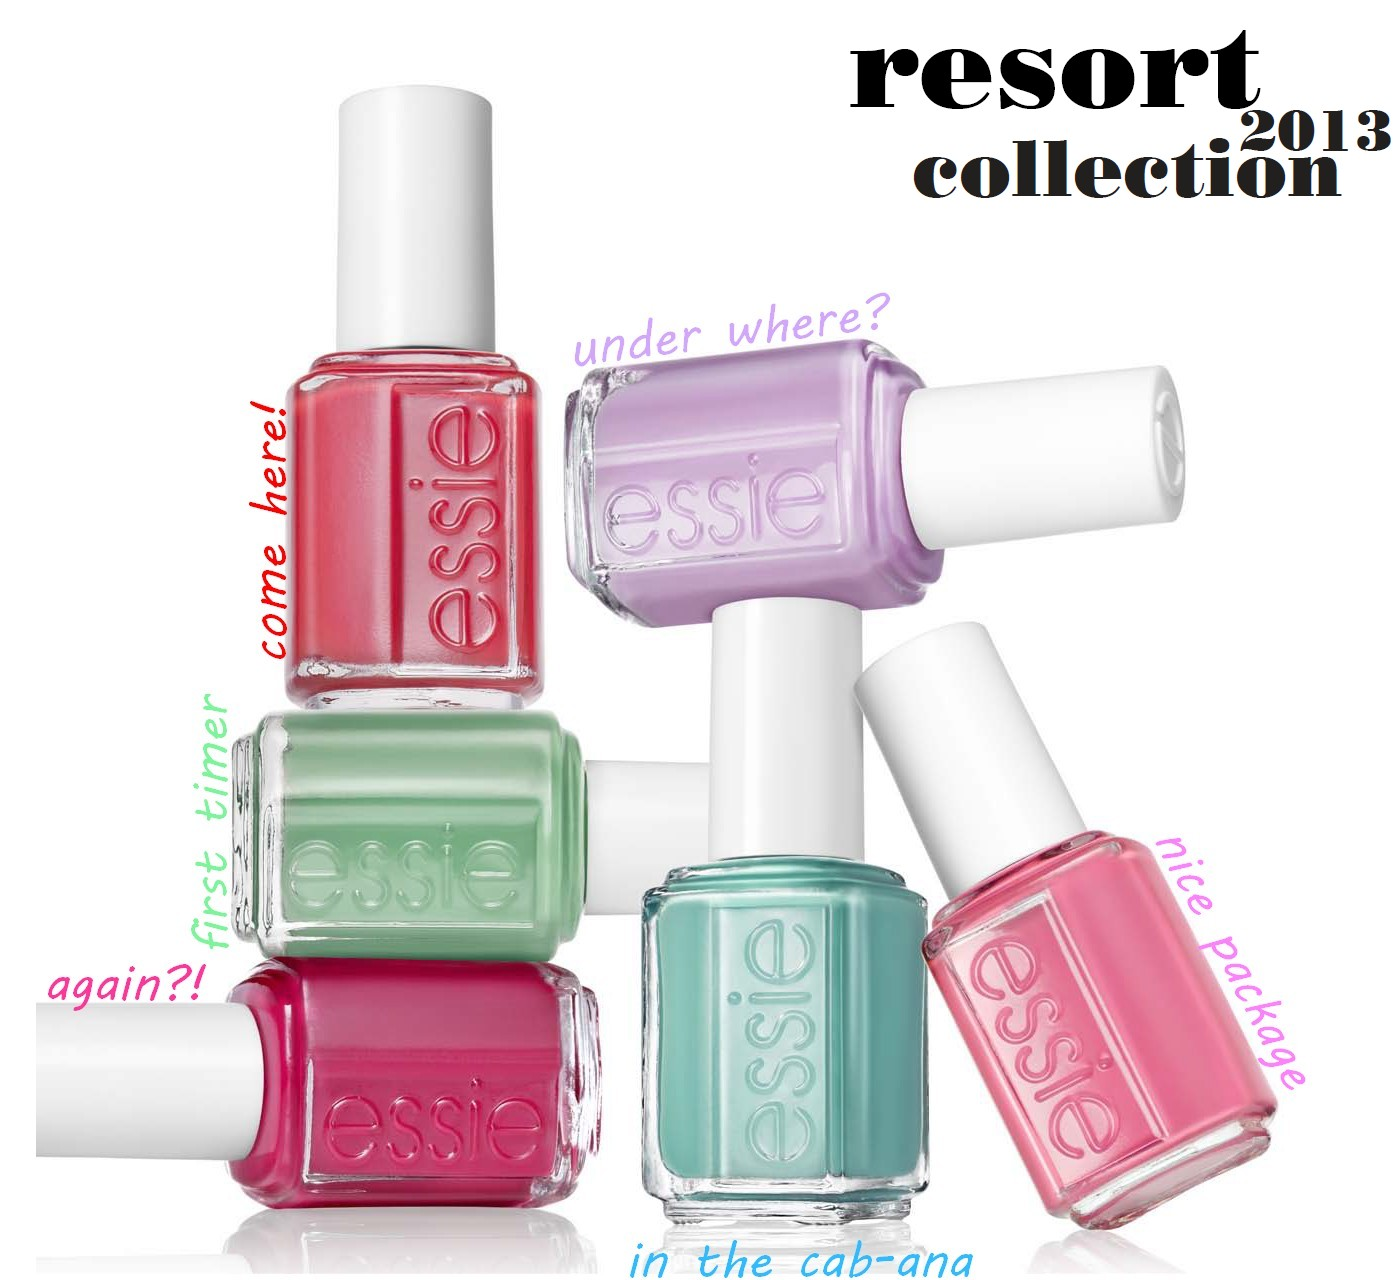 Upcoming essie collections - Nailderella